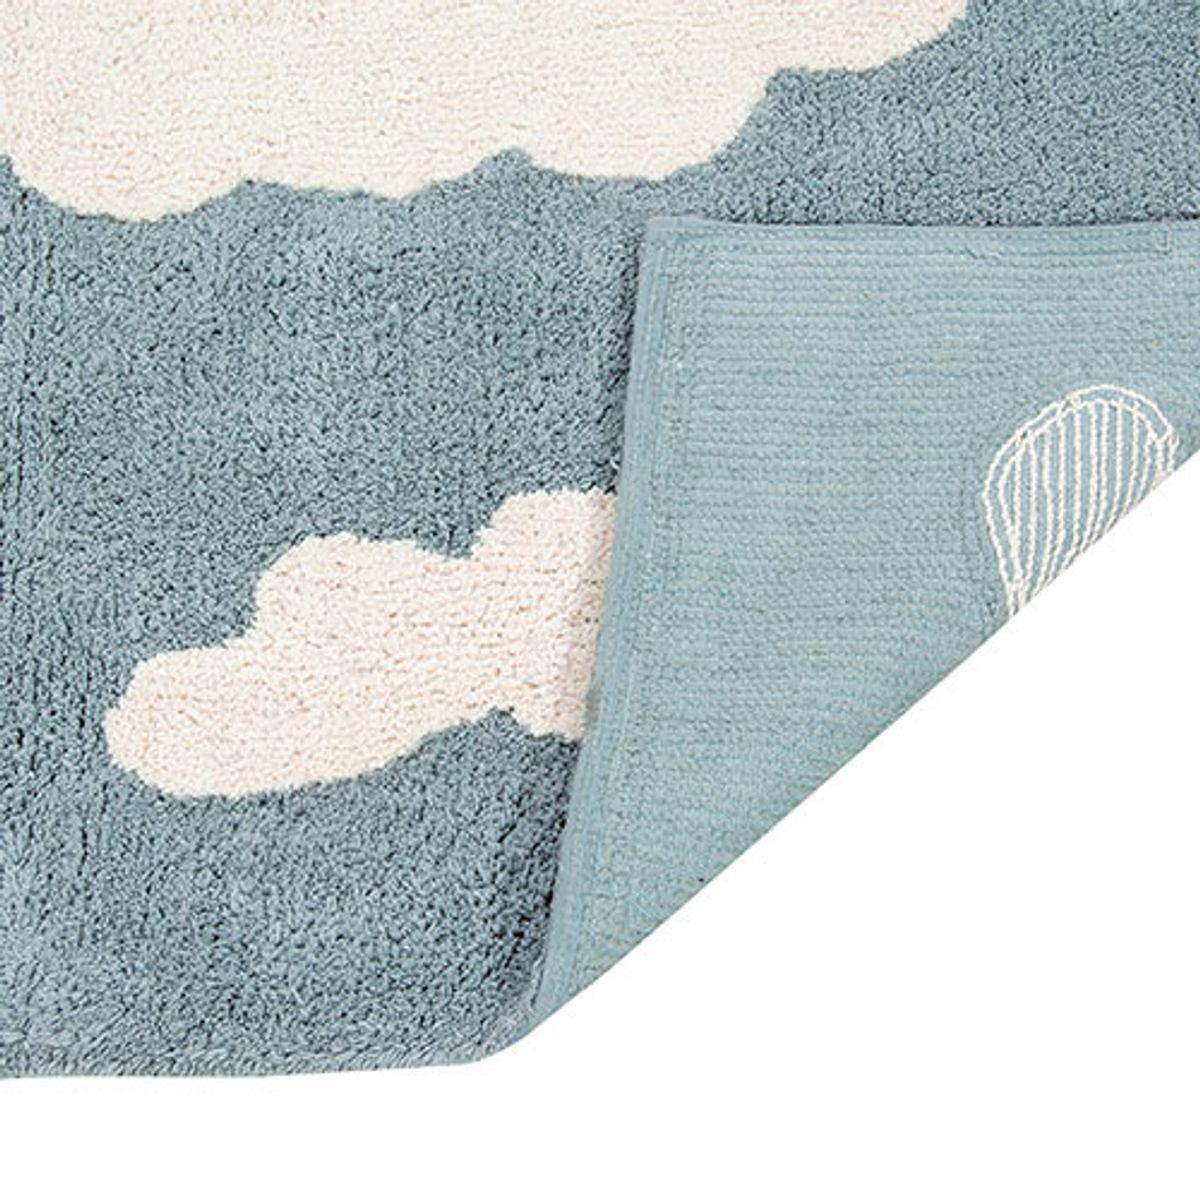 tapis enfant en coton motif nuage clouds lorena canals bleu decoclico. Black Bedroom Furniture Sets. Home Design Ideas